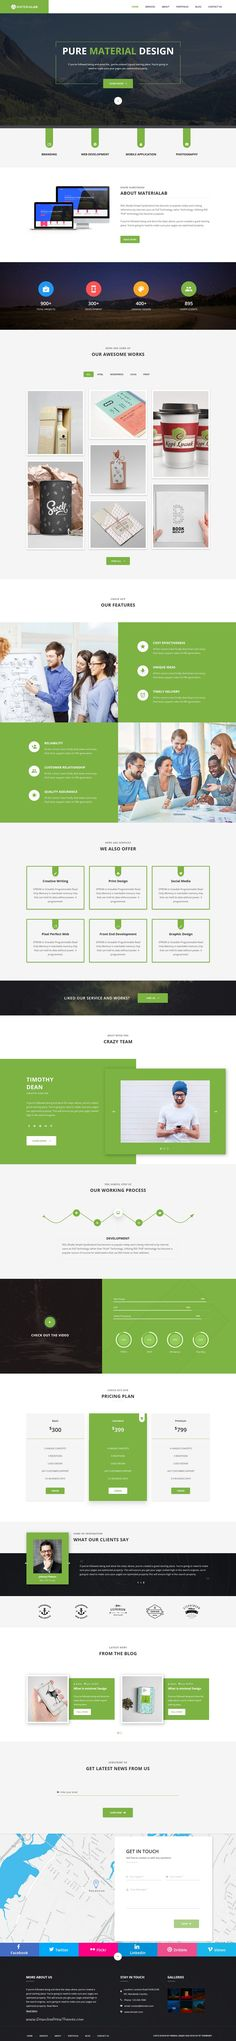 Google Website Templates Xportfolio Is A Clean Creative And Highly Professional